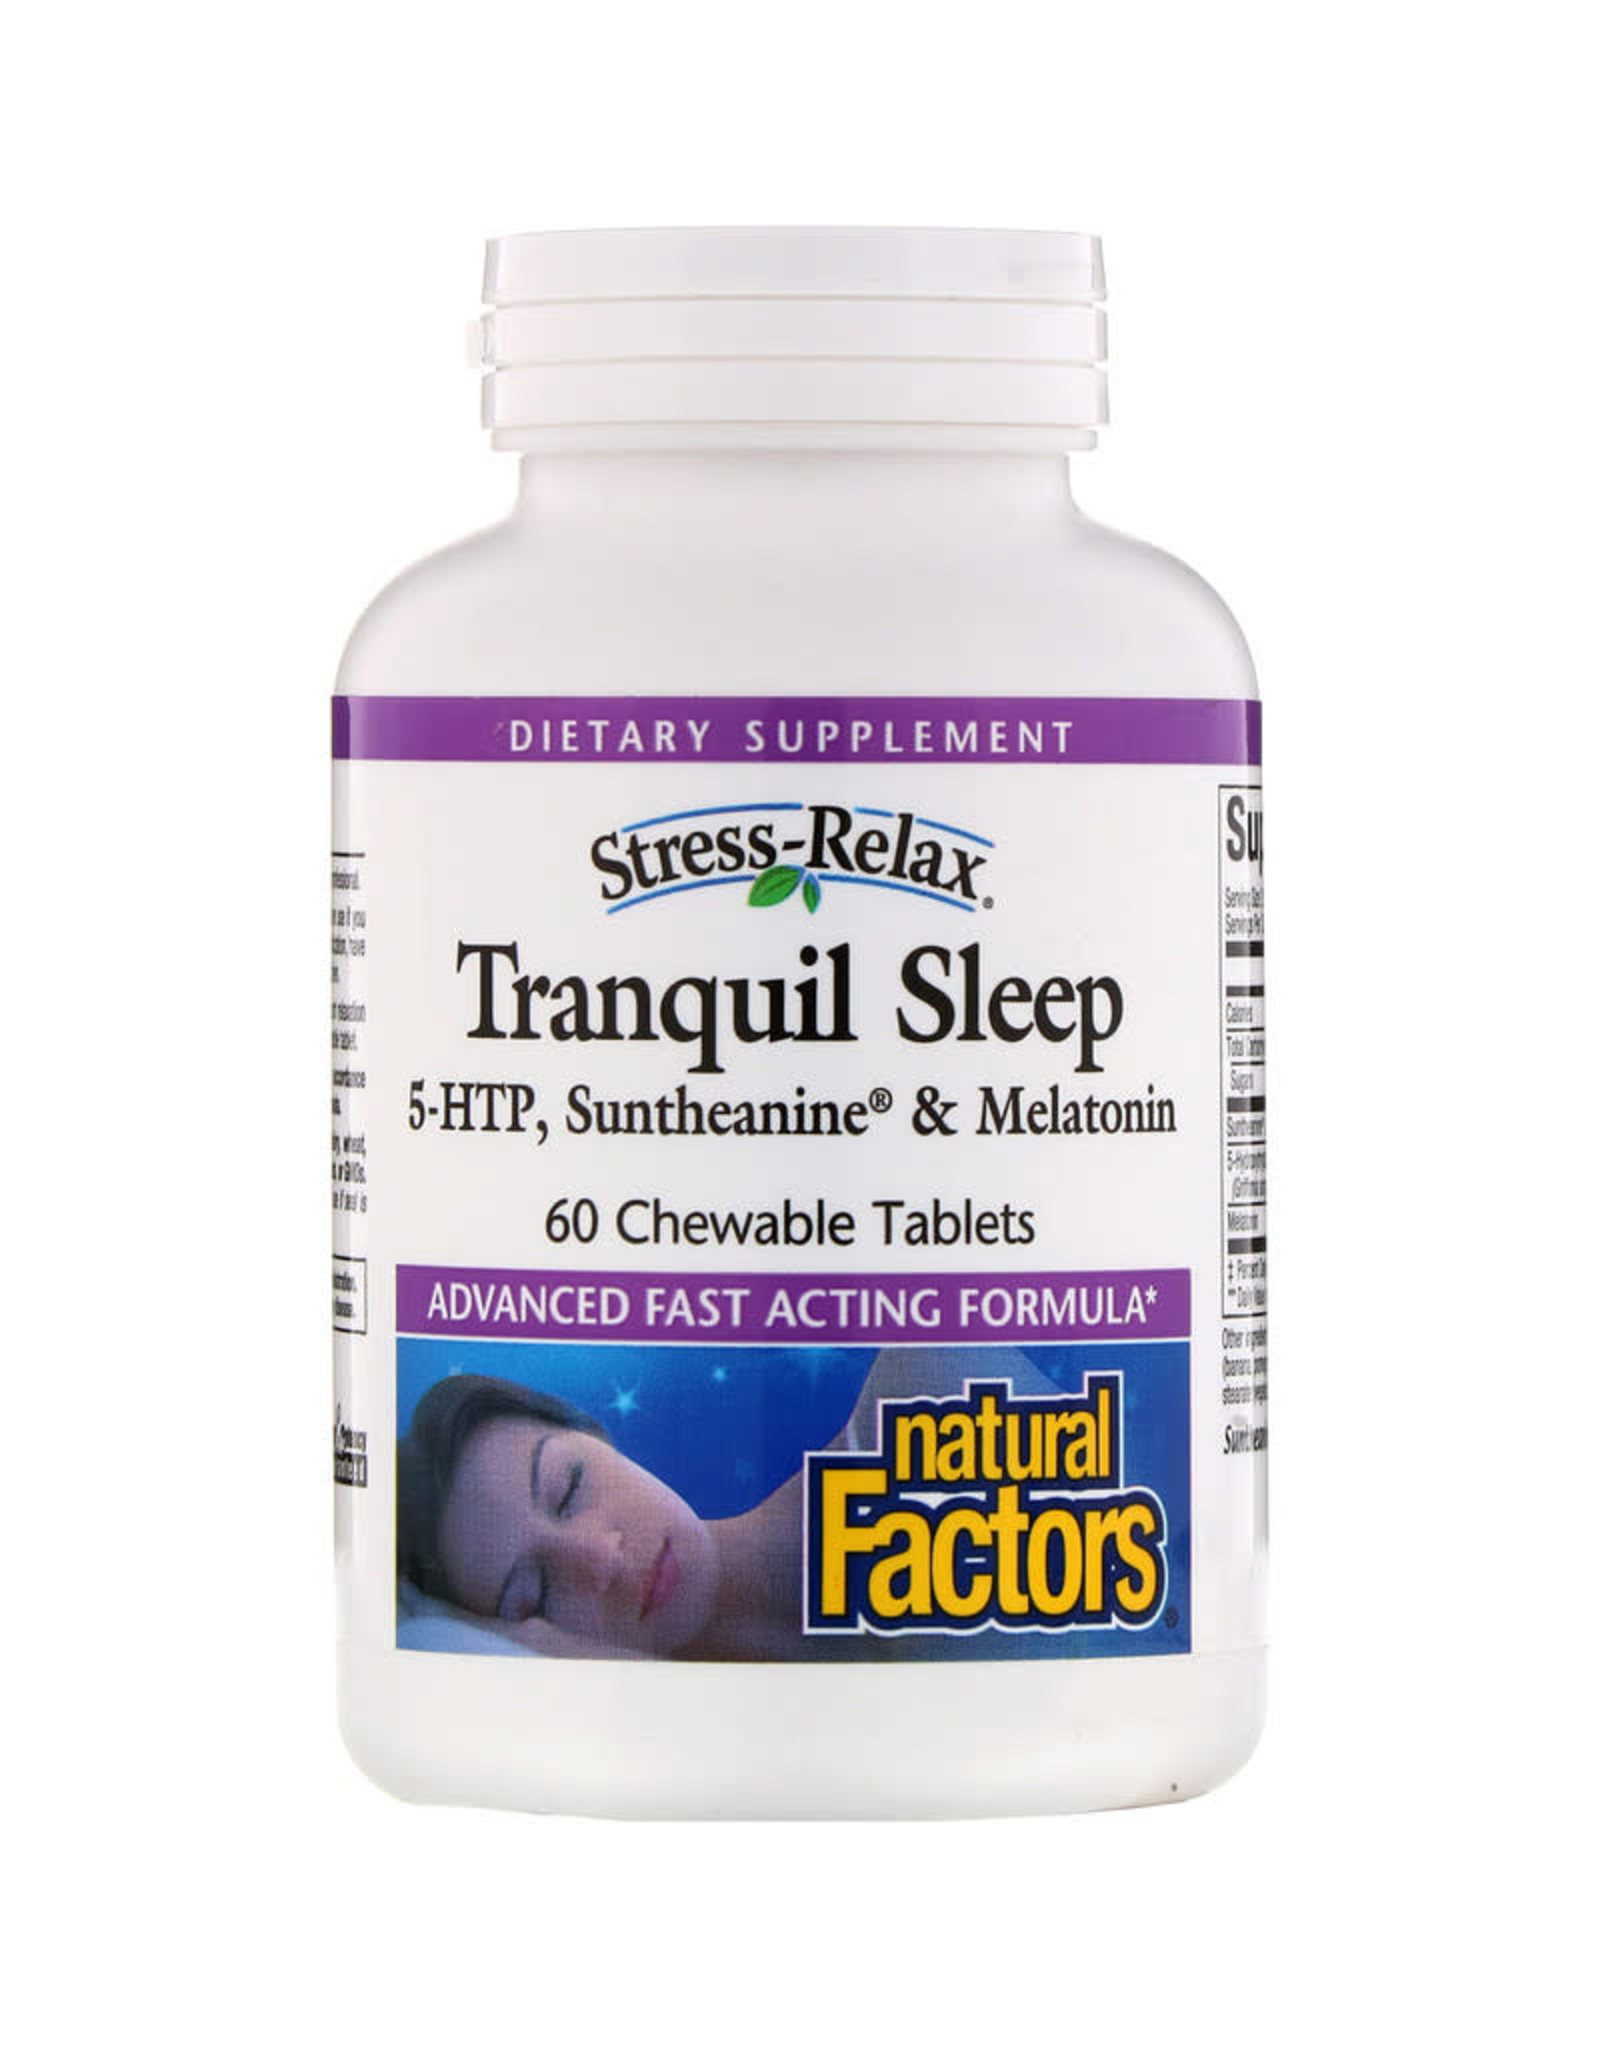 Natural Factors Stress-Relax Tranquil Sleep Chewable 60/TAB